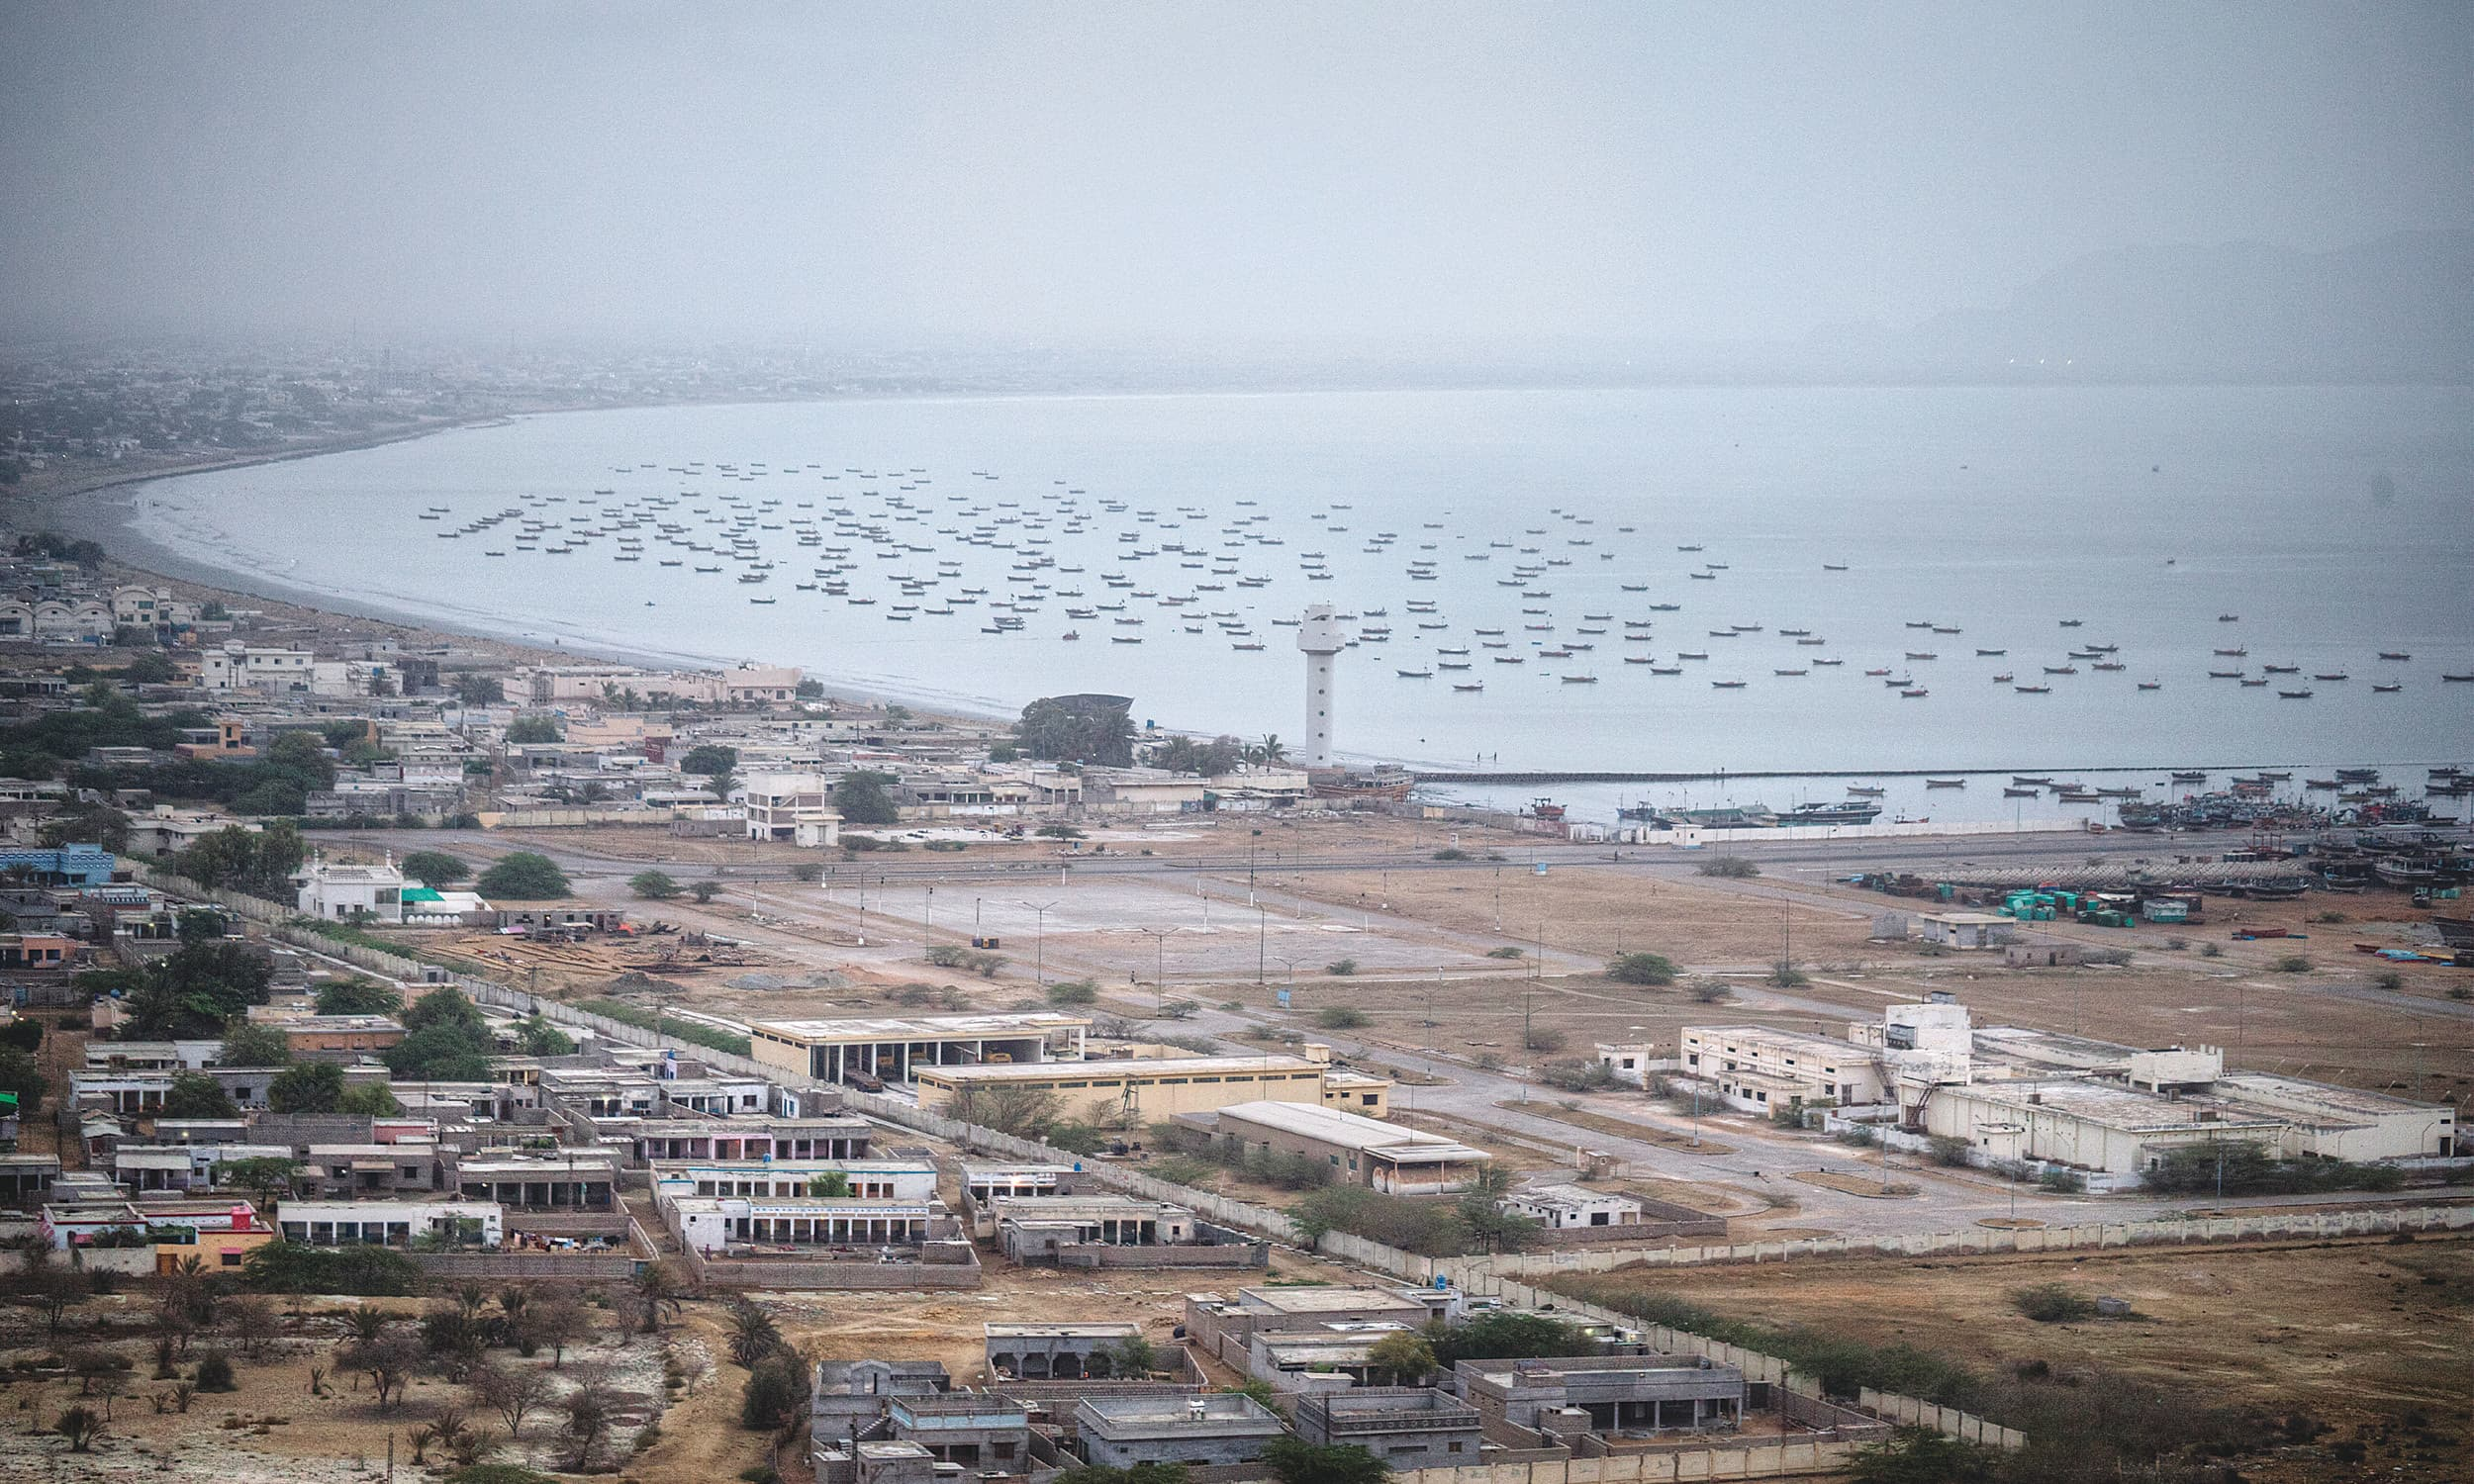 A view of Gwadar city from my hotel at dawn | Kohi Marri